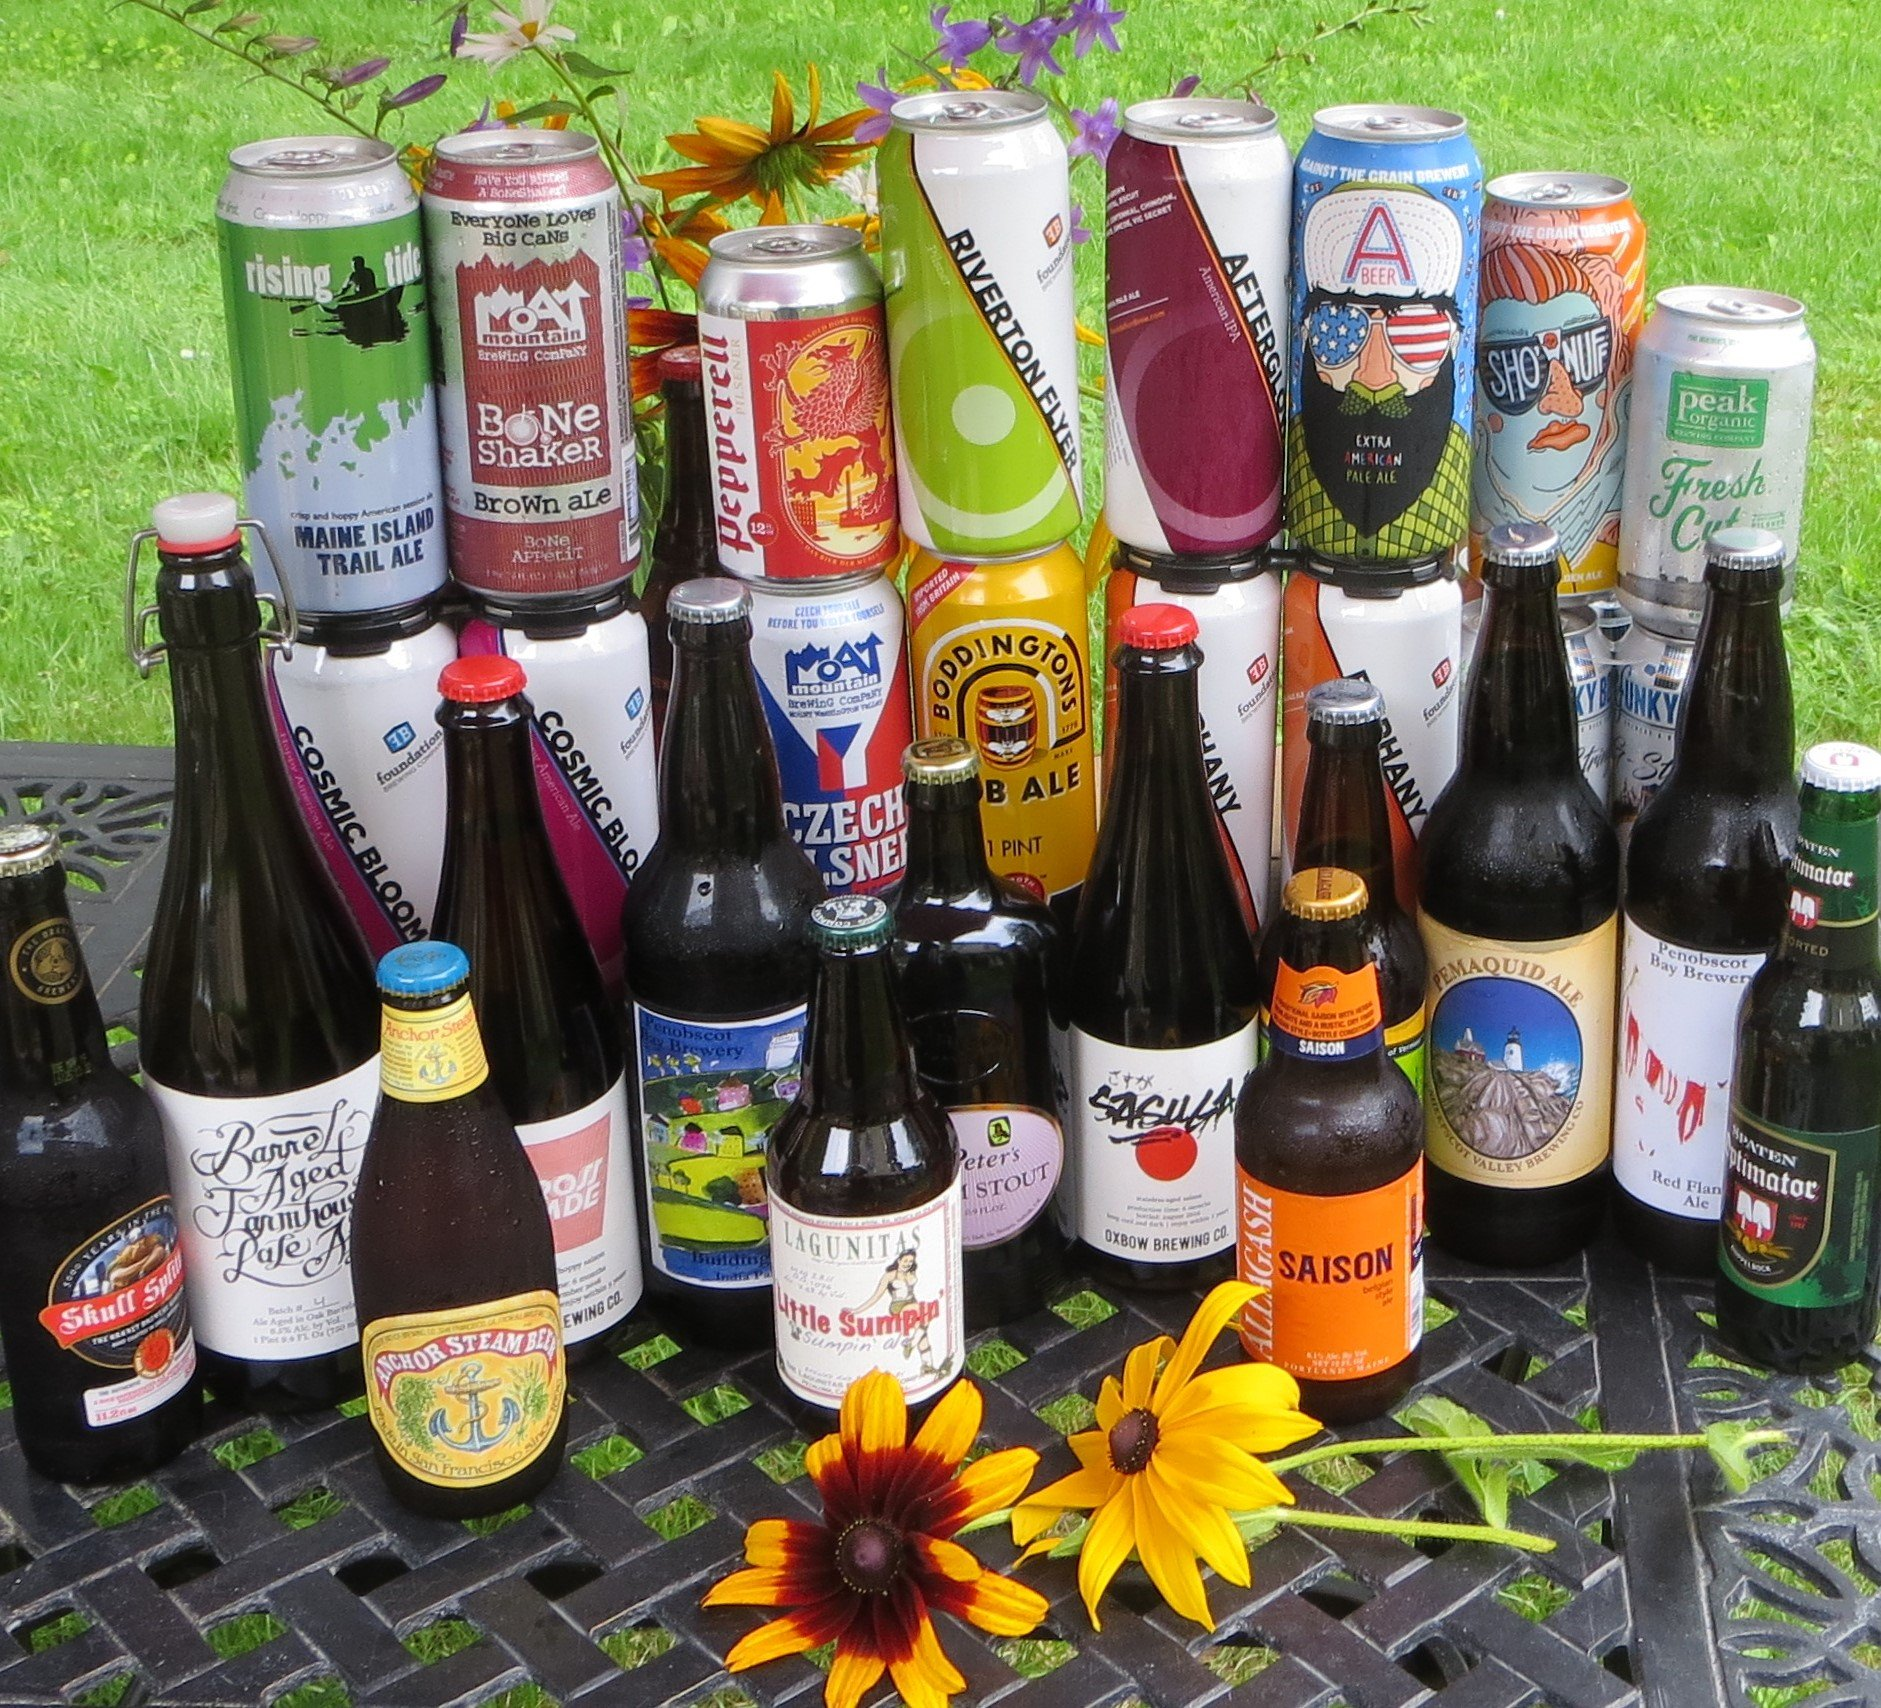 Find craft beer,and local Maine brews at the Black Sheep Wine and Beer Store,, by the sea in Harpswell,Maine.